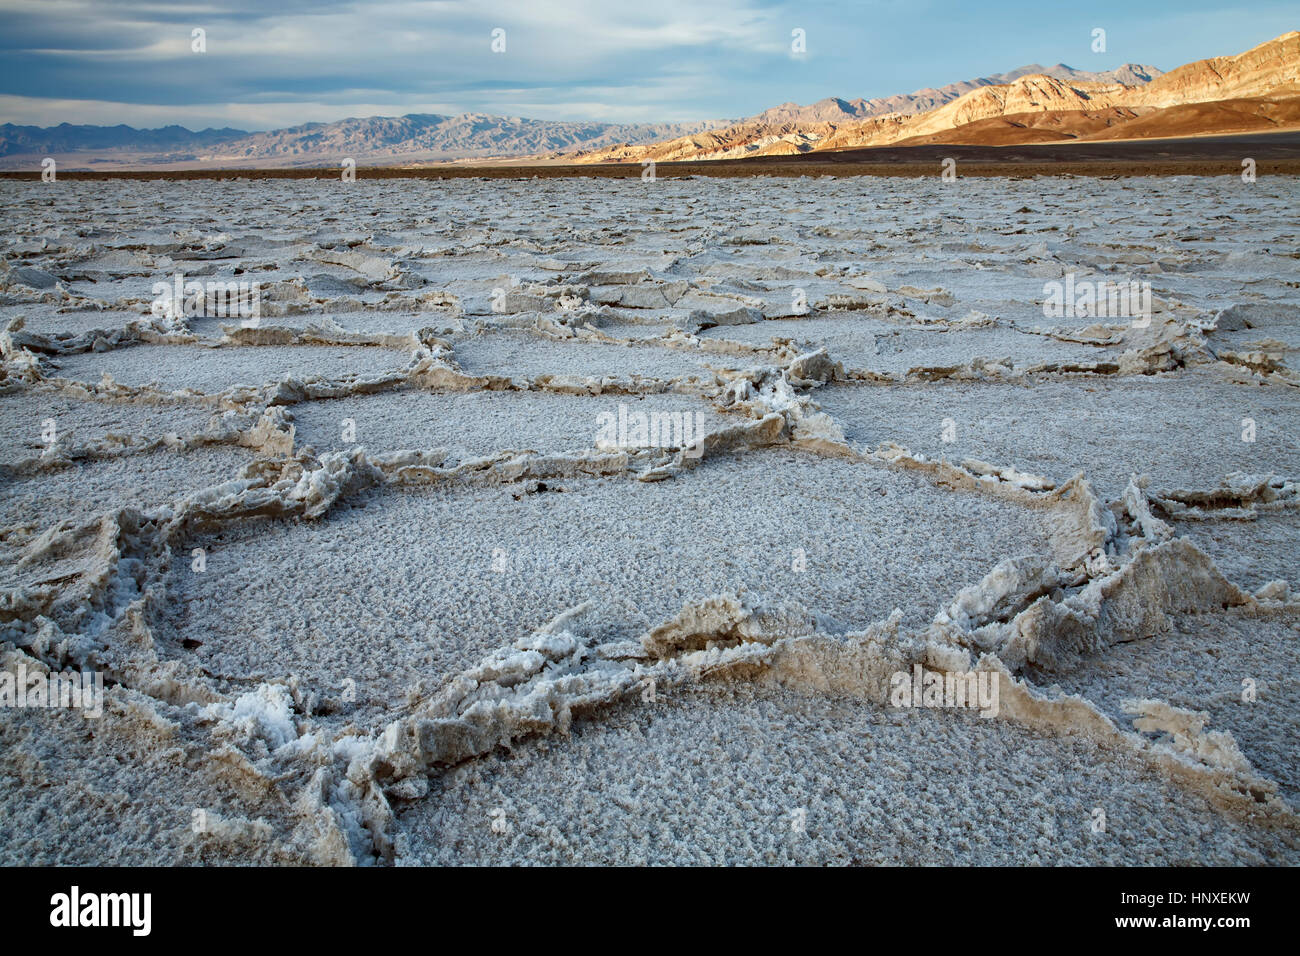 Cracked salt pans, Badwater Basin, Death Valley National Park, California USA - Stock Image